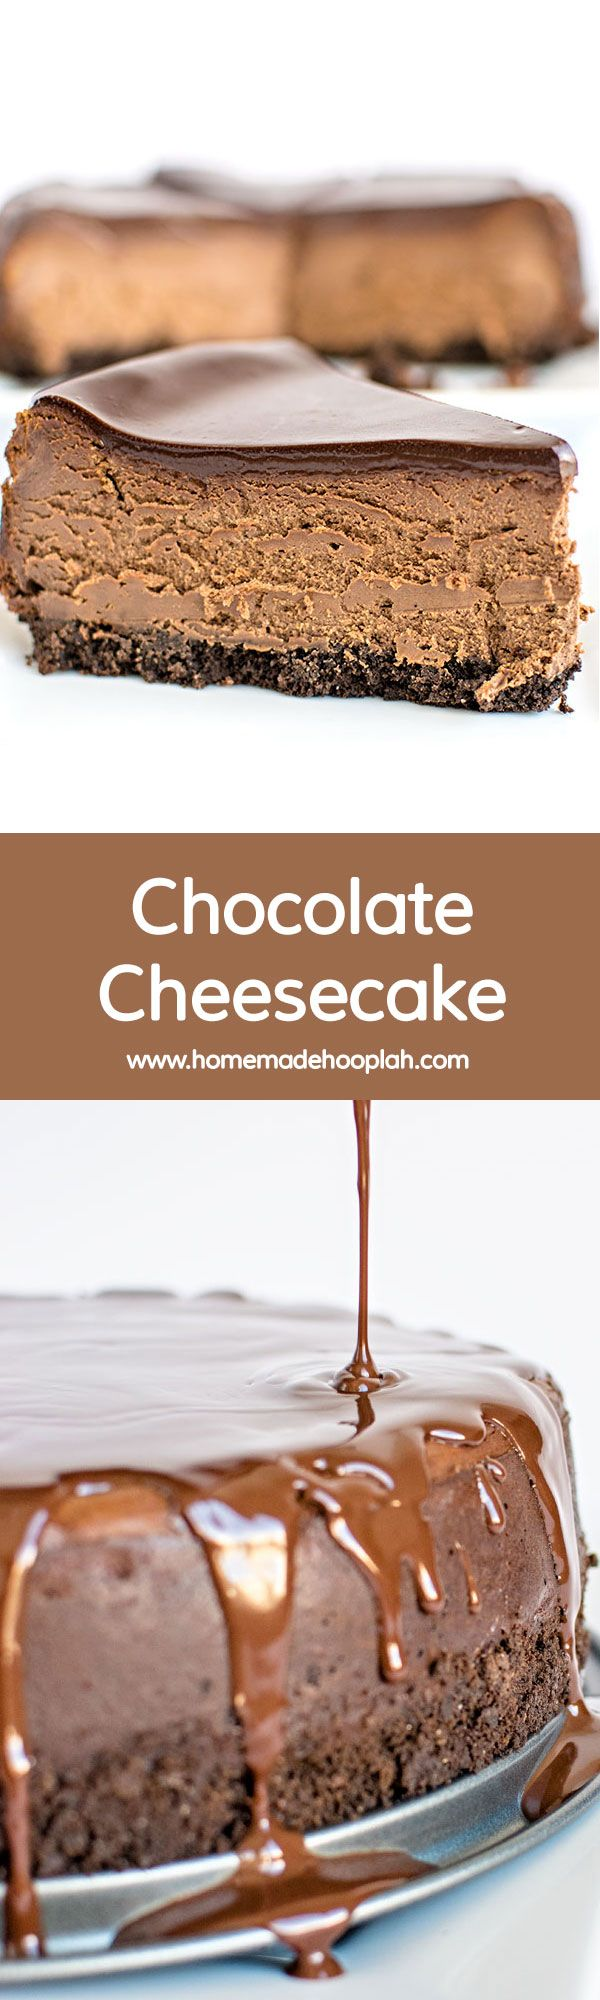 Chocolate Cheesecake! The traditional chocolate cheesecake with chocolate ganache topping.